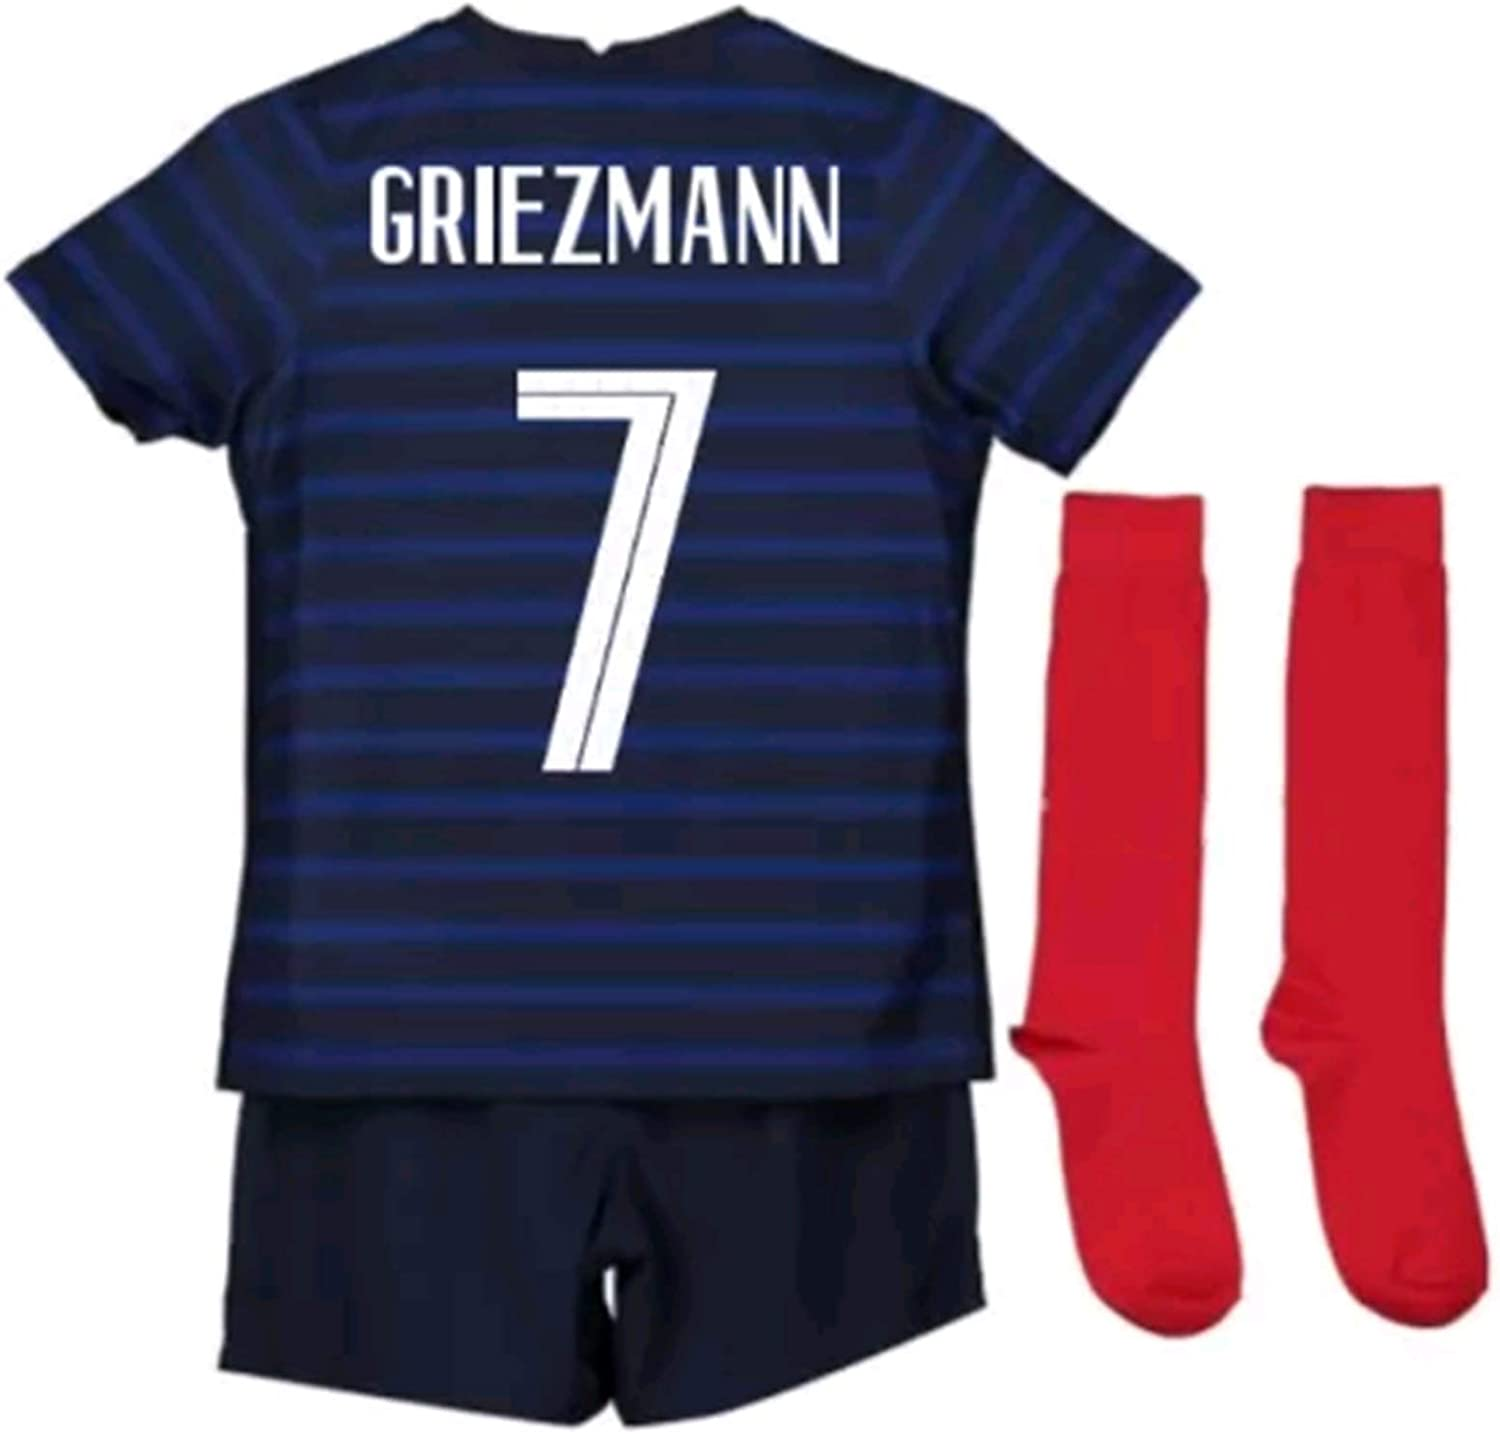 LISIMKEM 2020-2021 Kids/Youths Home Soccer Jersey/Short/Socks Colour Blue